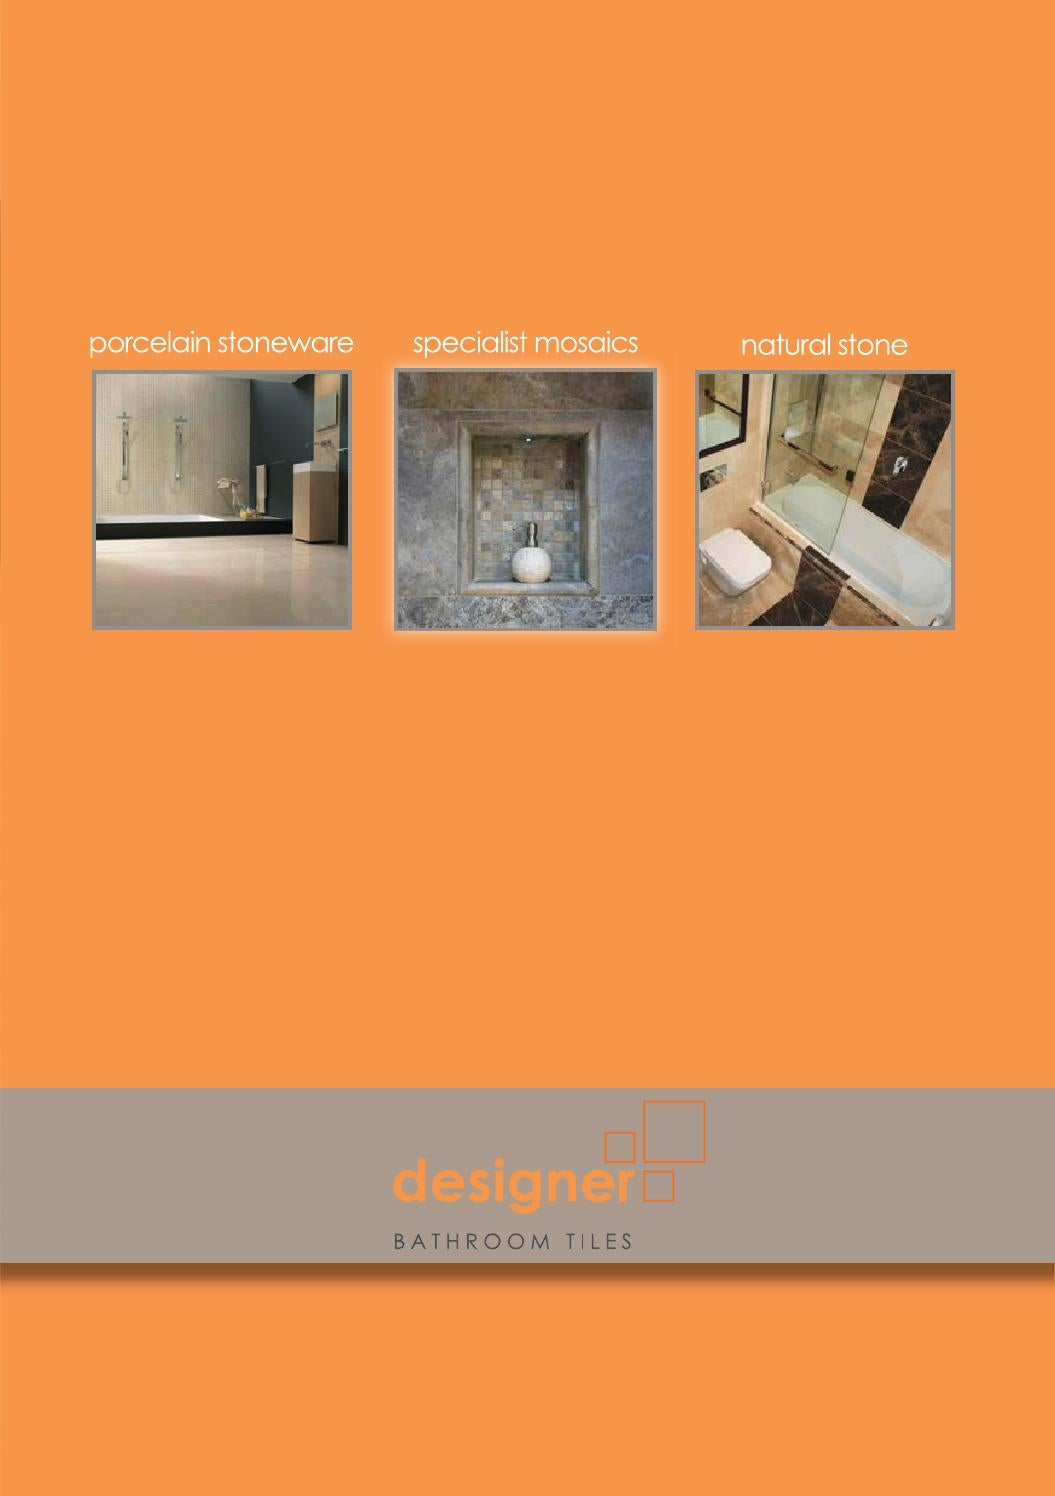 Designer Bathroom Tiles Catalogue 2014 by abacusdirect - Issuu